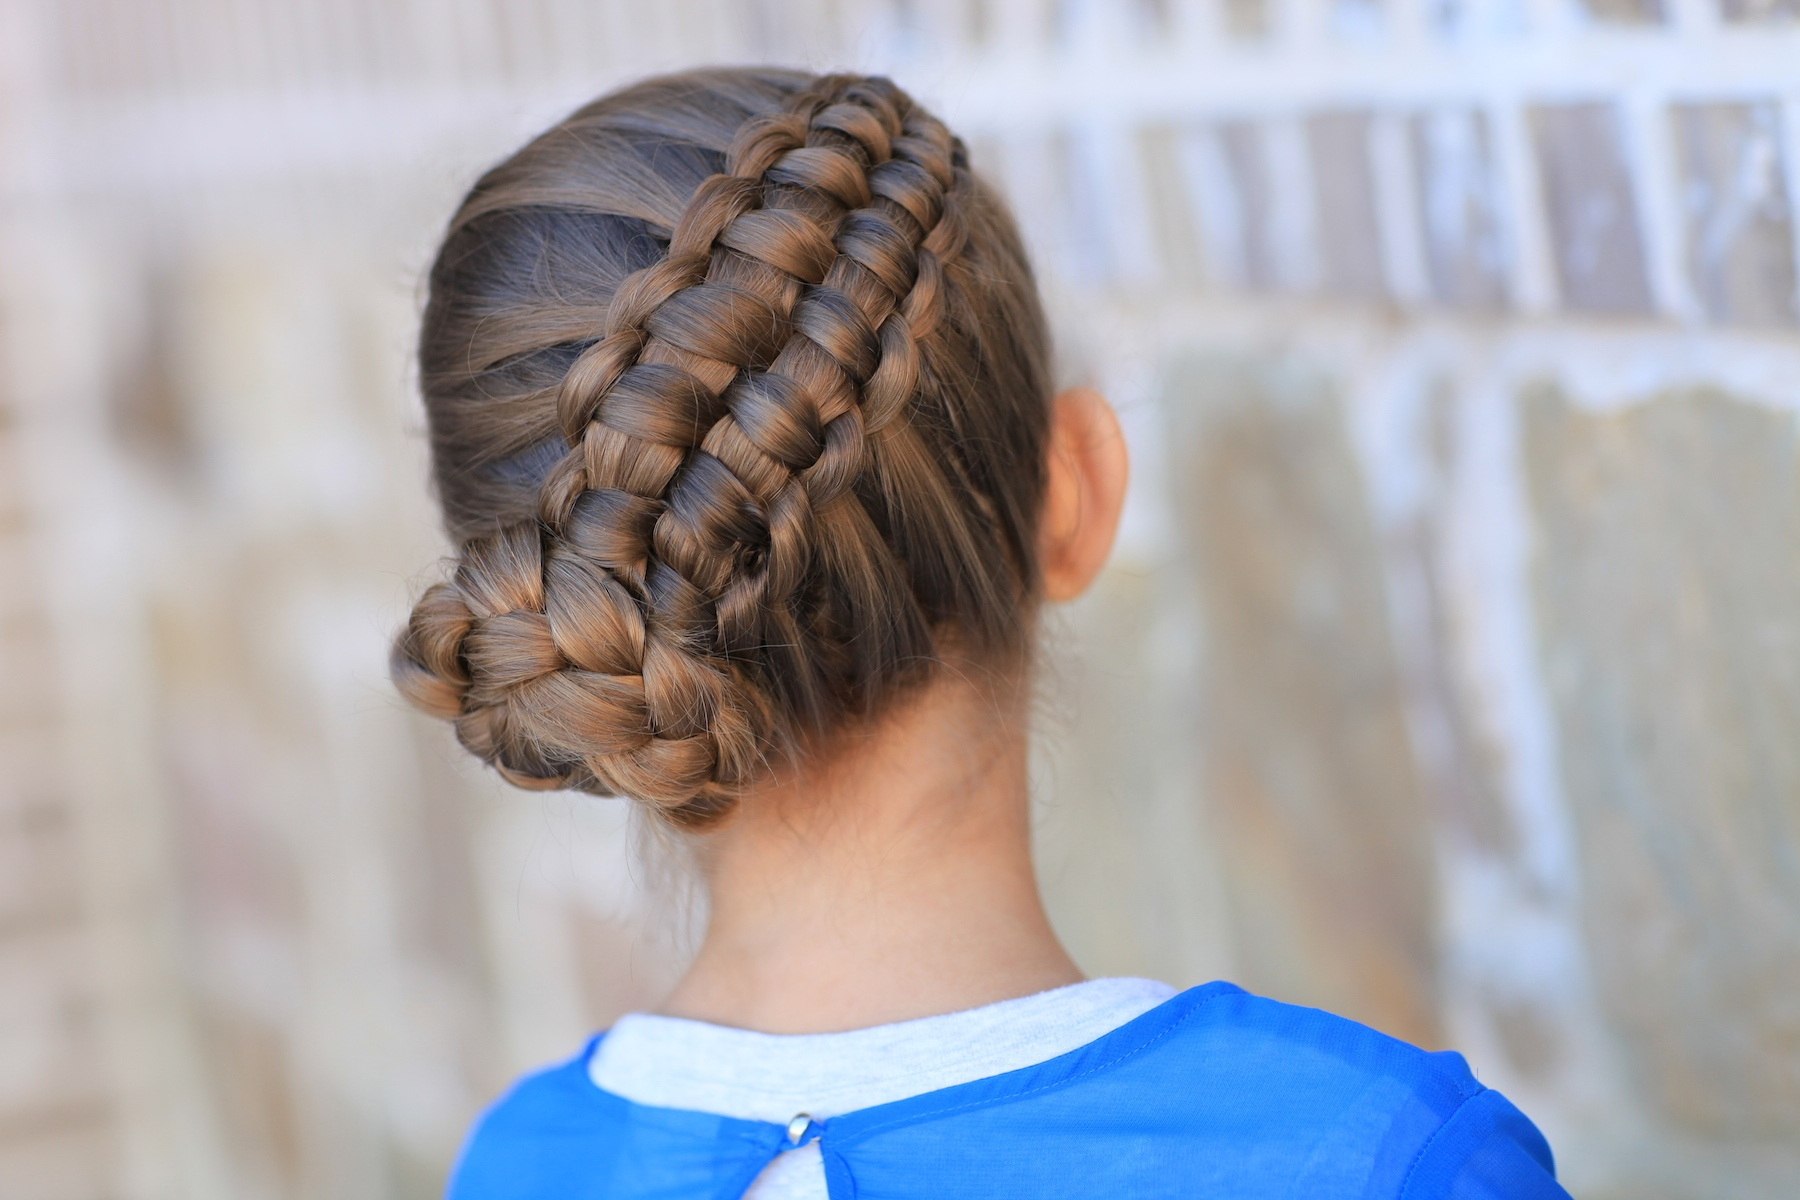 How To Create A Zipper Braid Updo Hairstyles Cute Girls Hairstyles